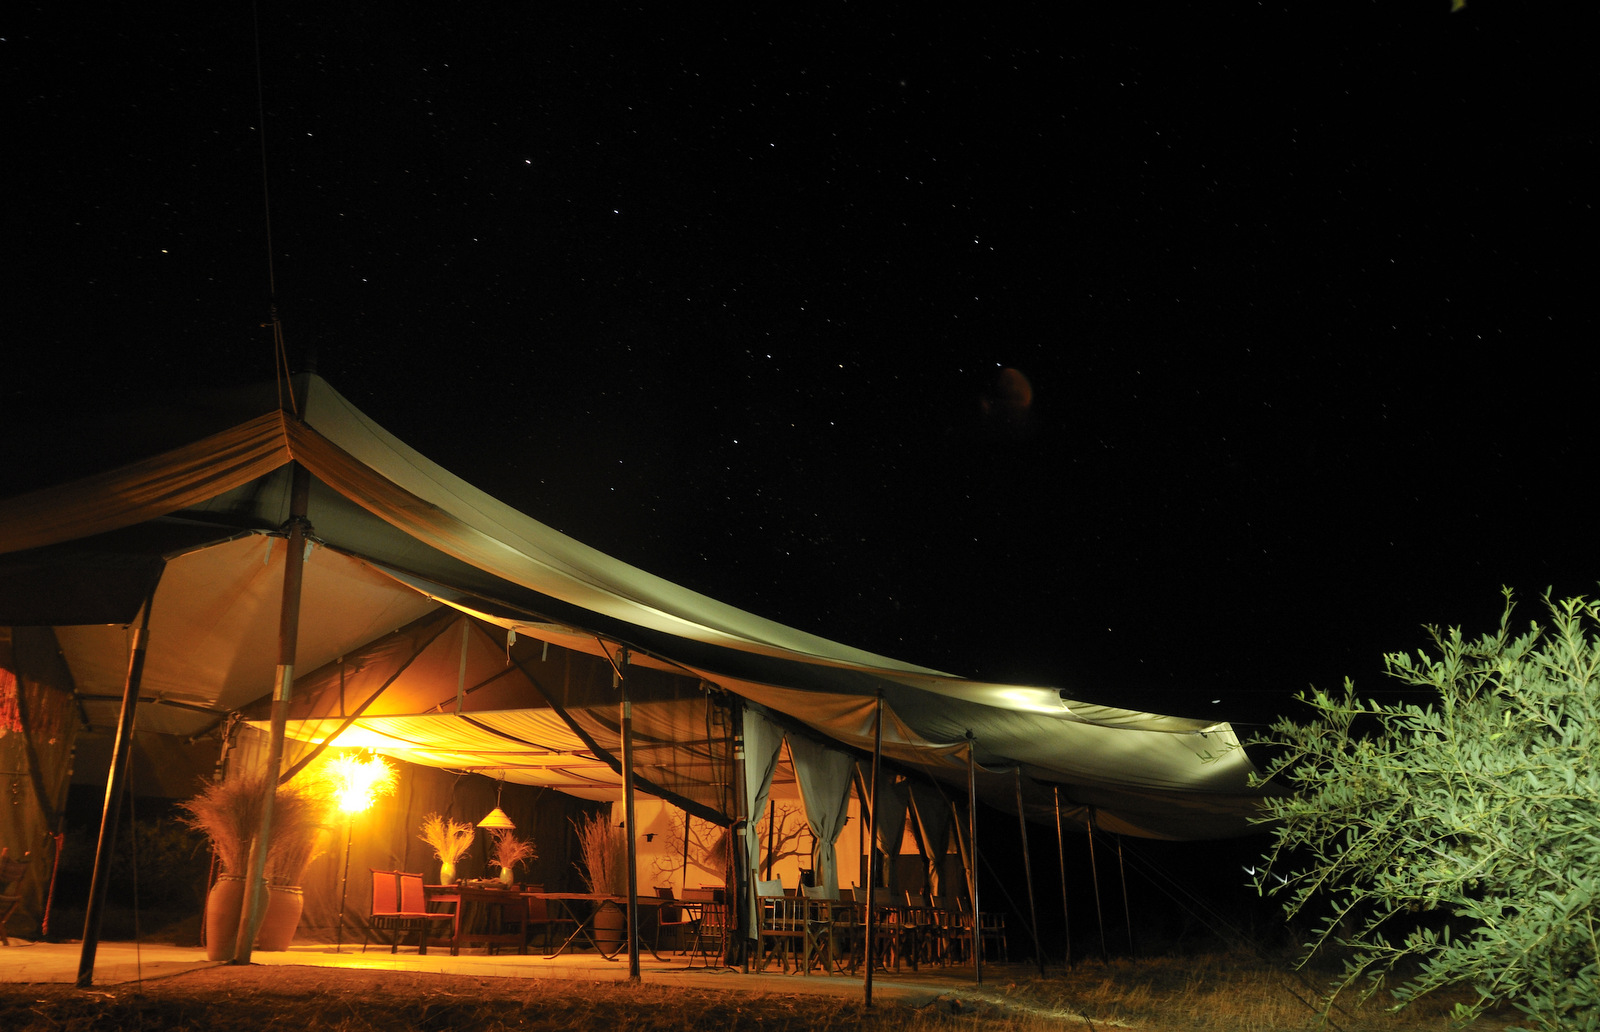 Kwihala-Camp-mess-tent-night-LR.jpg